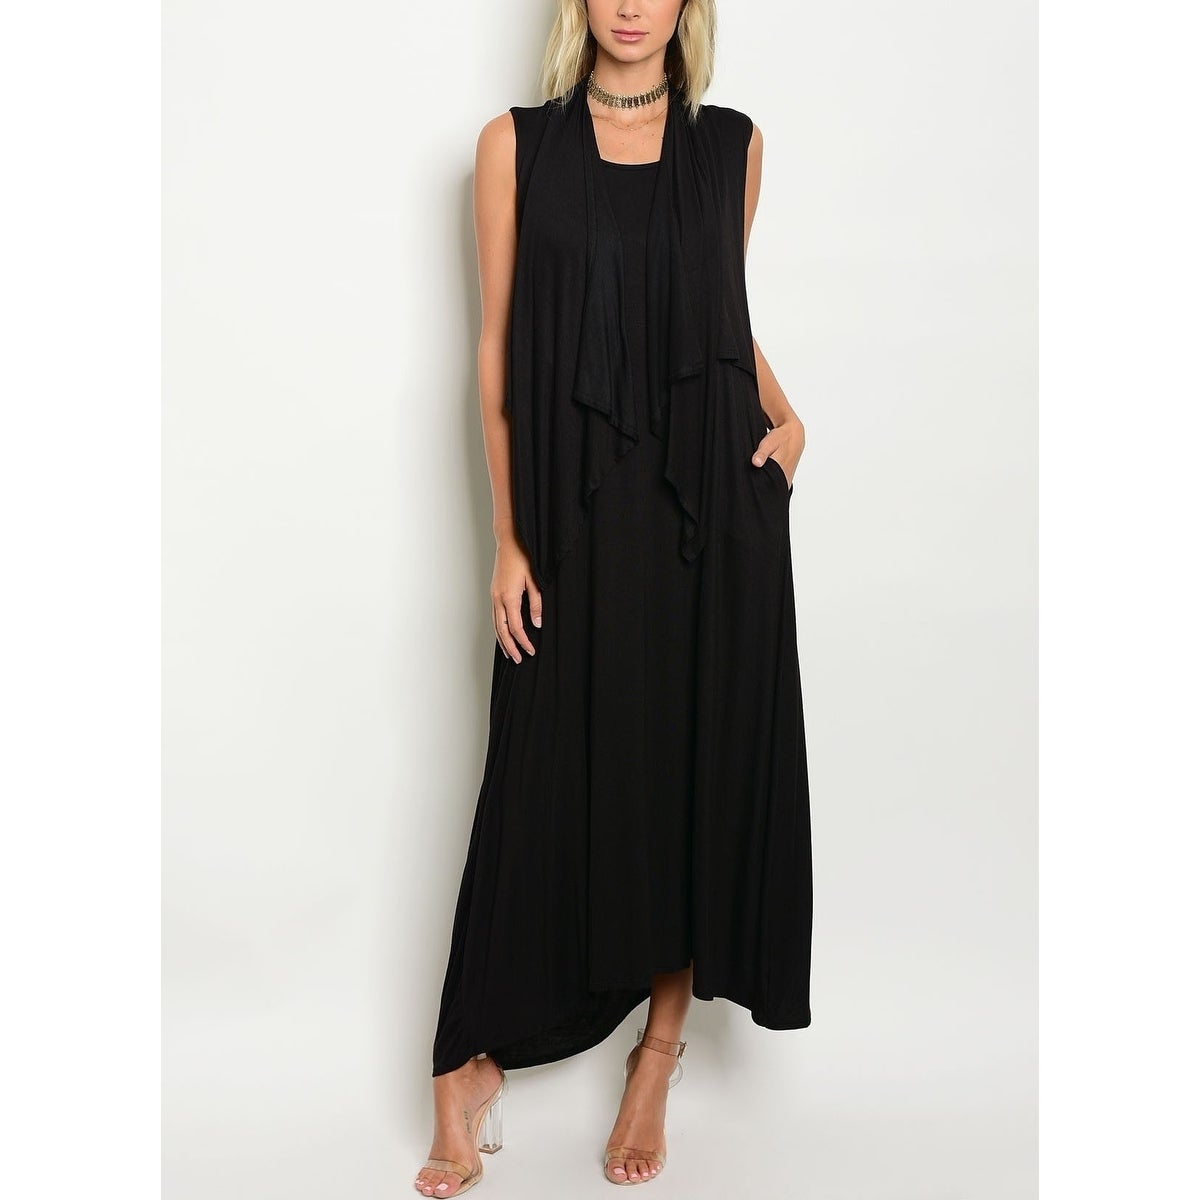 c5ec24c6c42 Womens Maxi Dresses With Pockets